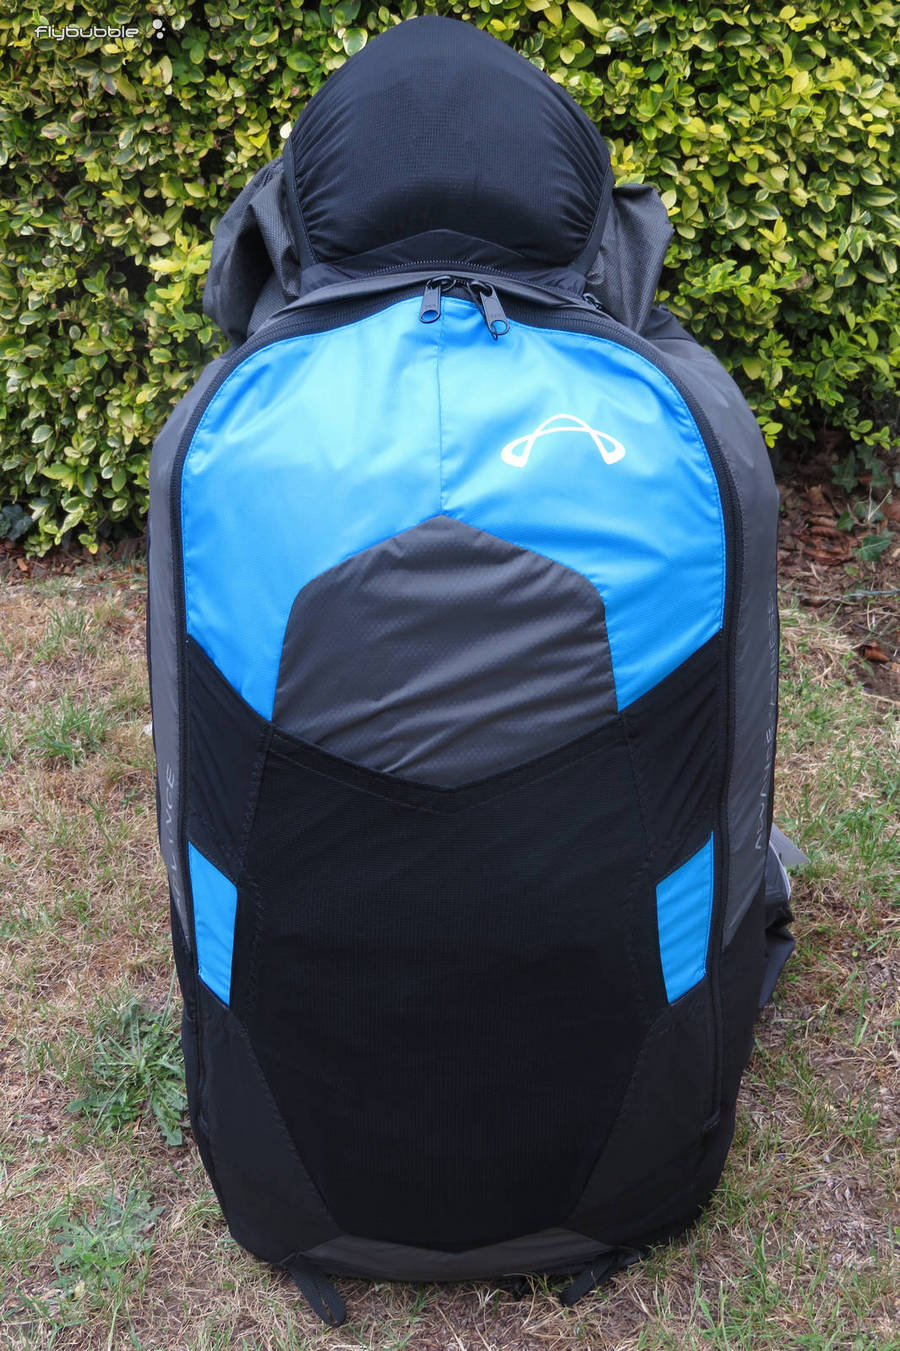 The rucksack with helmet on top - Advance EASINESS 3 paragliding harness review by Flybubble